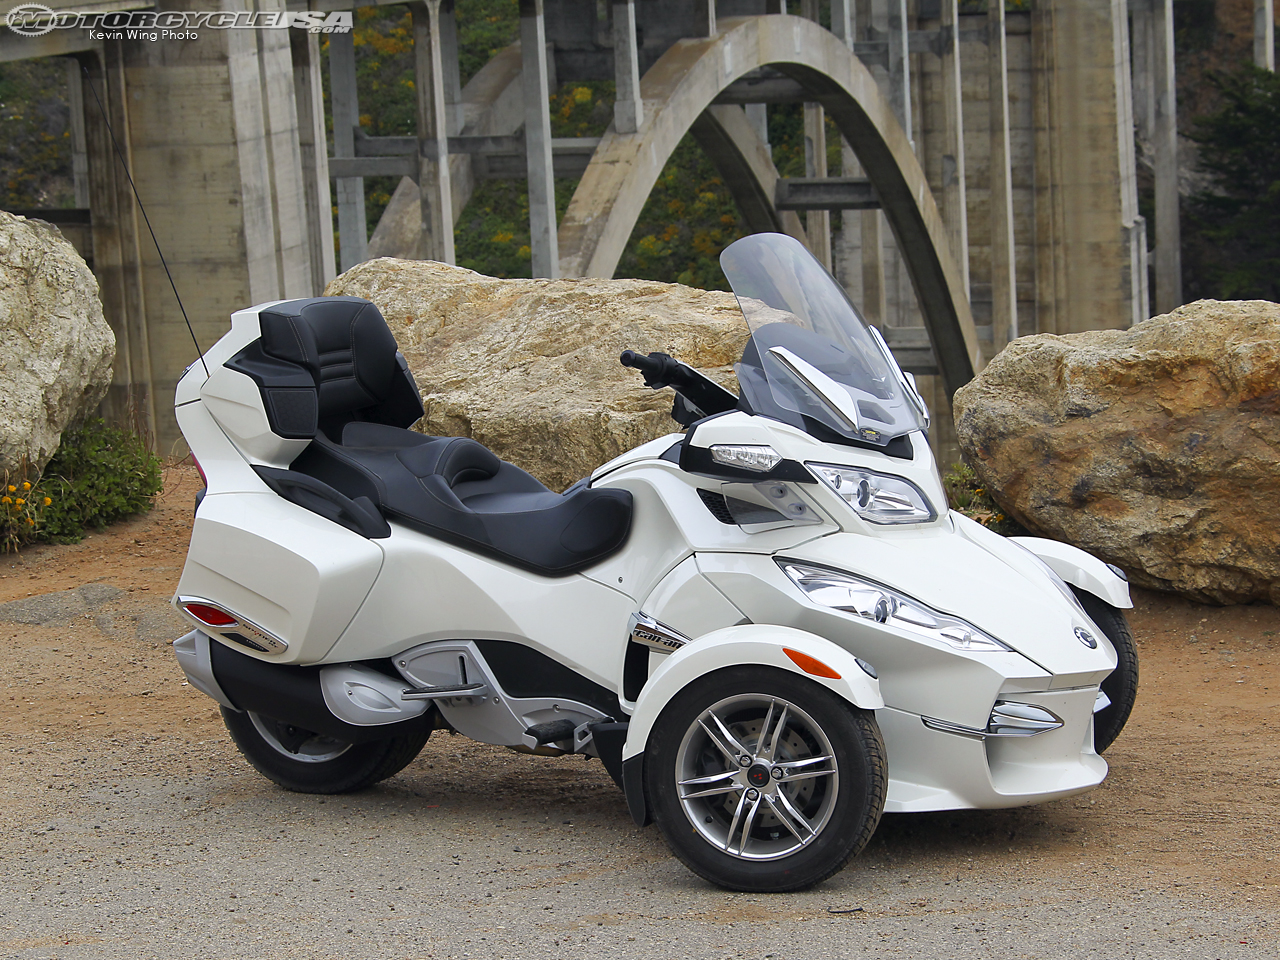 2011 Can-Am Spyder Roadster RT Limited #5